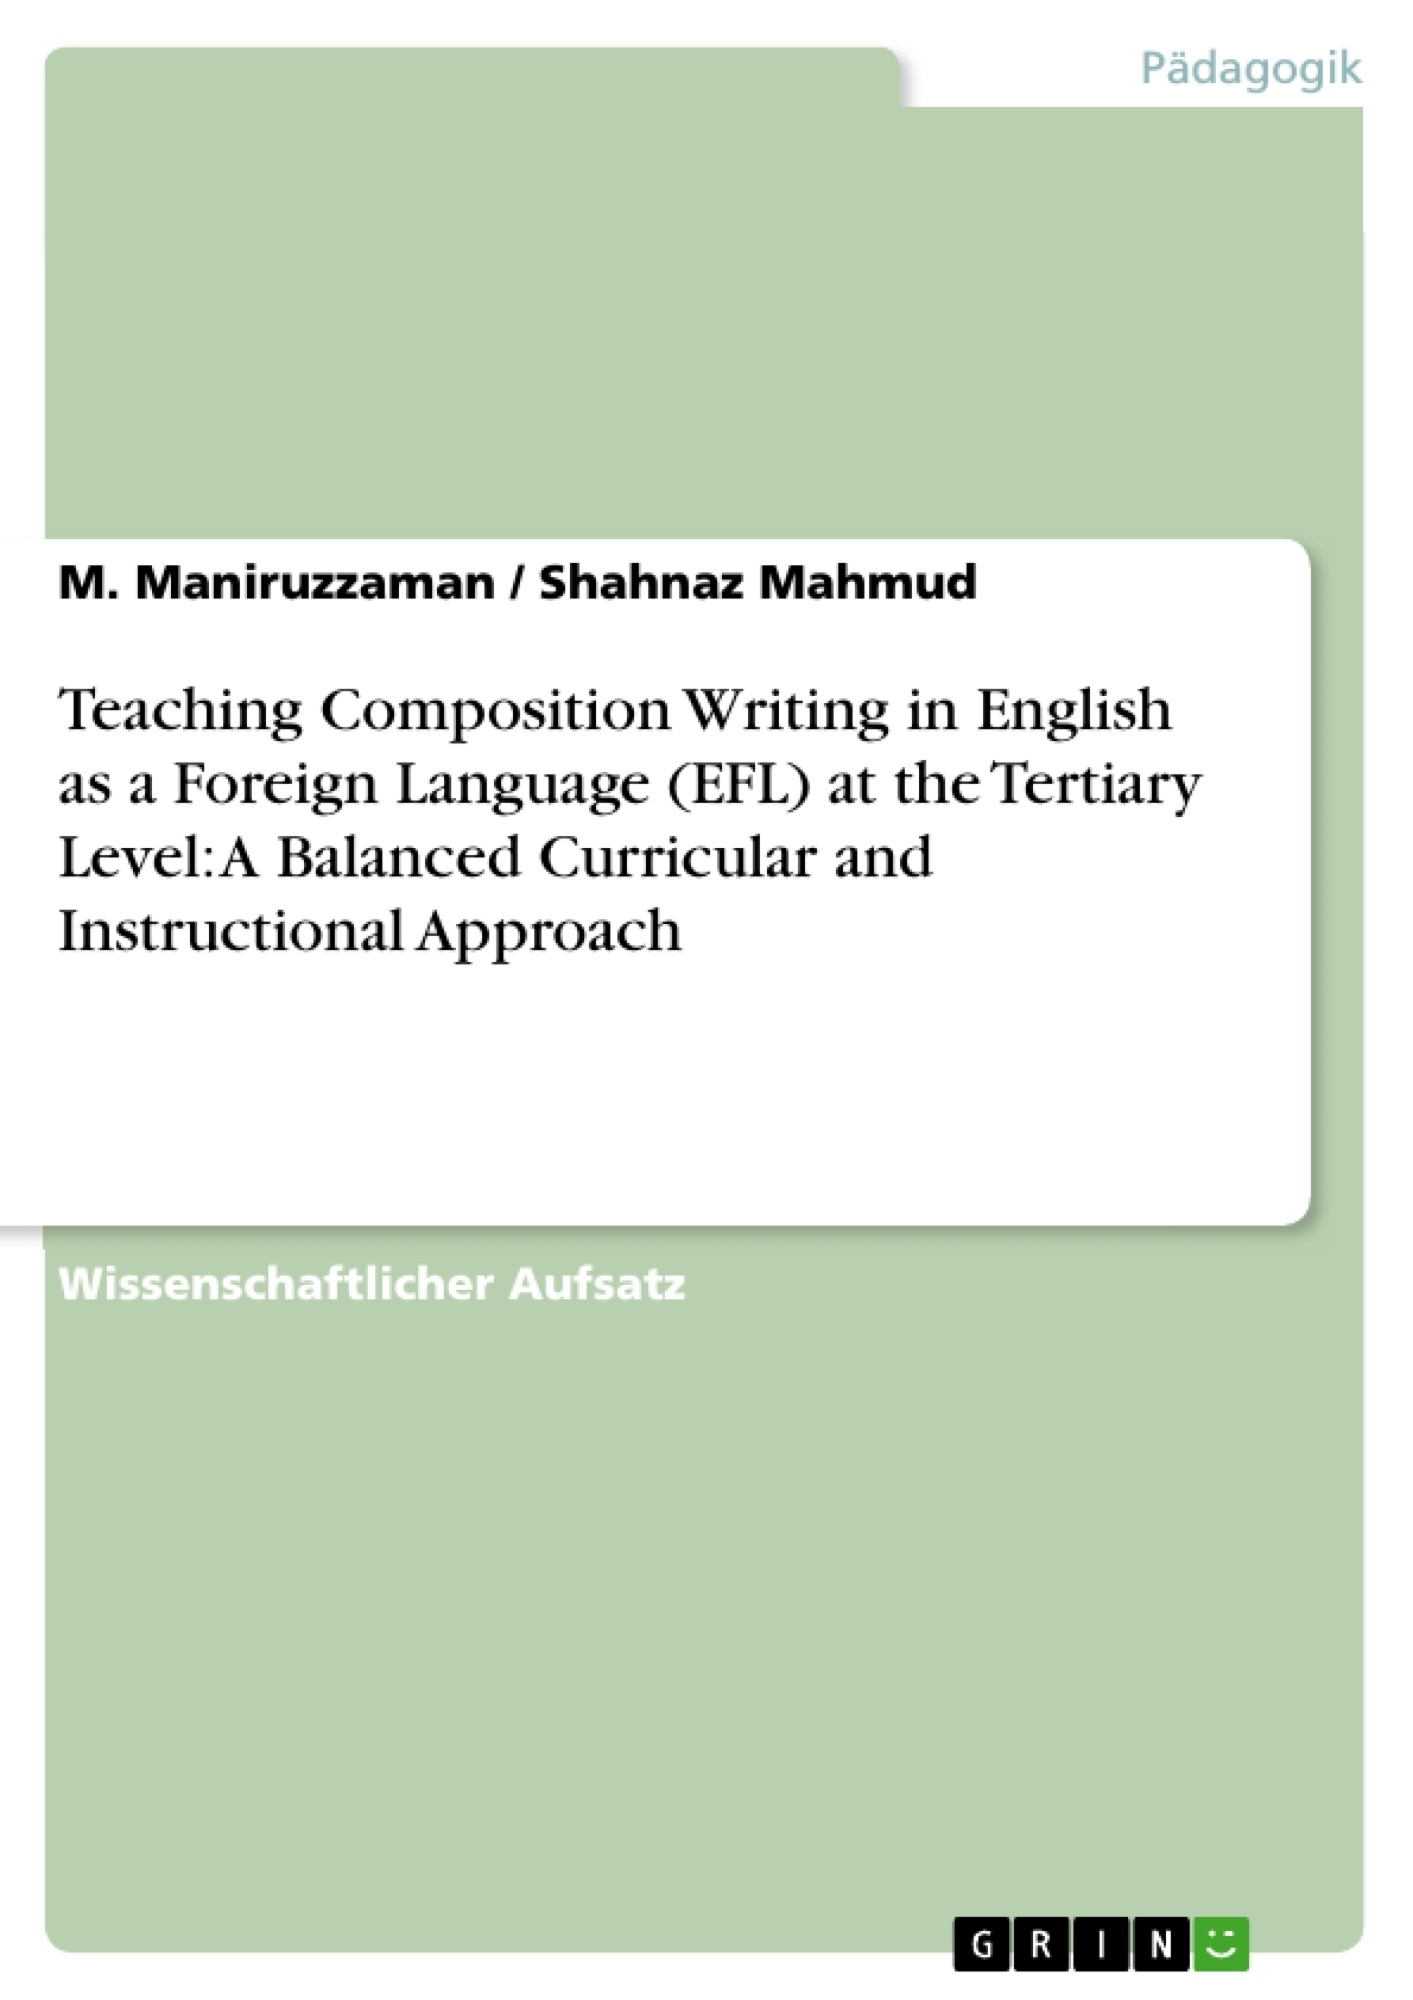 Titel: Teaching Composition Writing in English as a Foreign Language (EFL) at the Tertiary Level: A Balanced Curricular and Instructional Approach